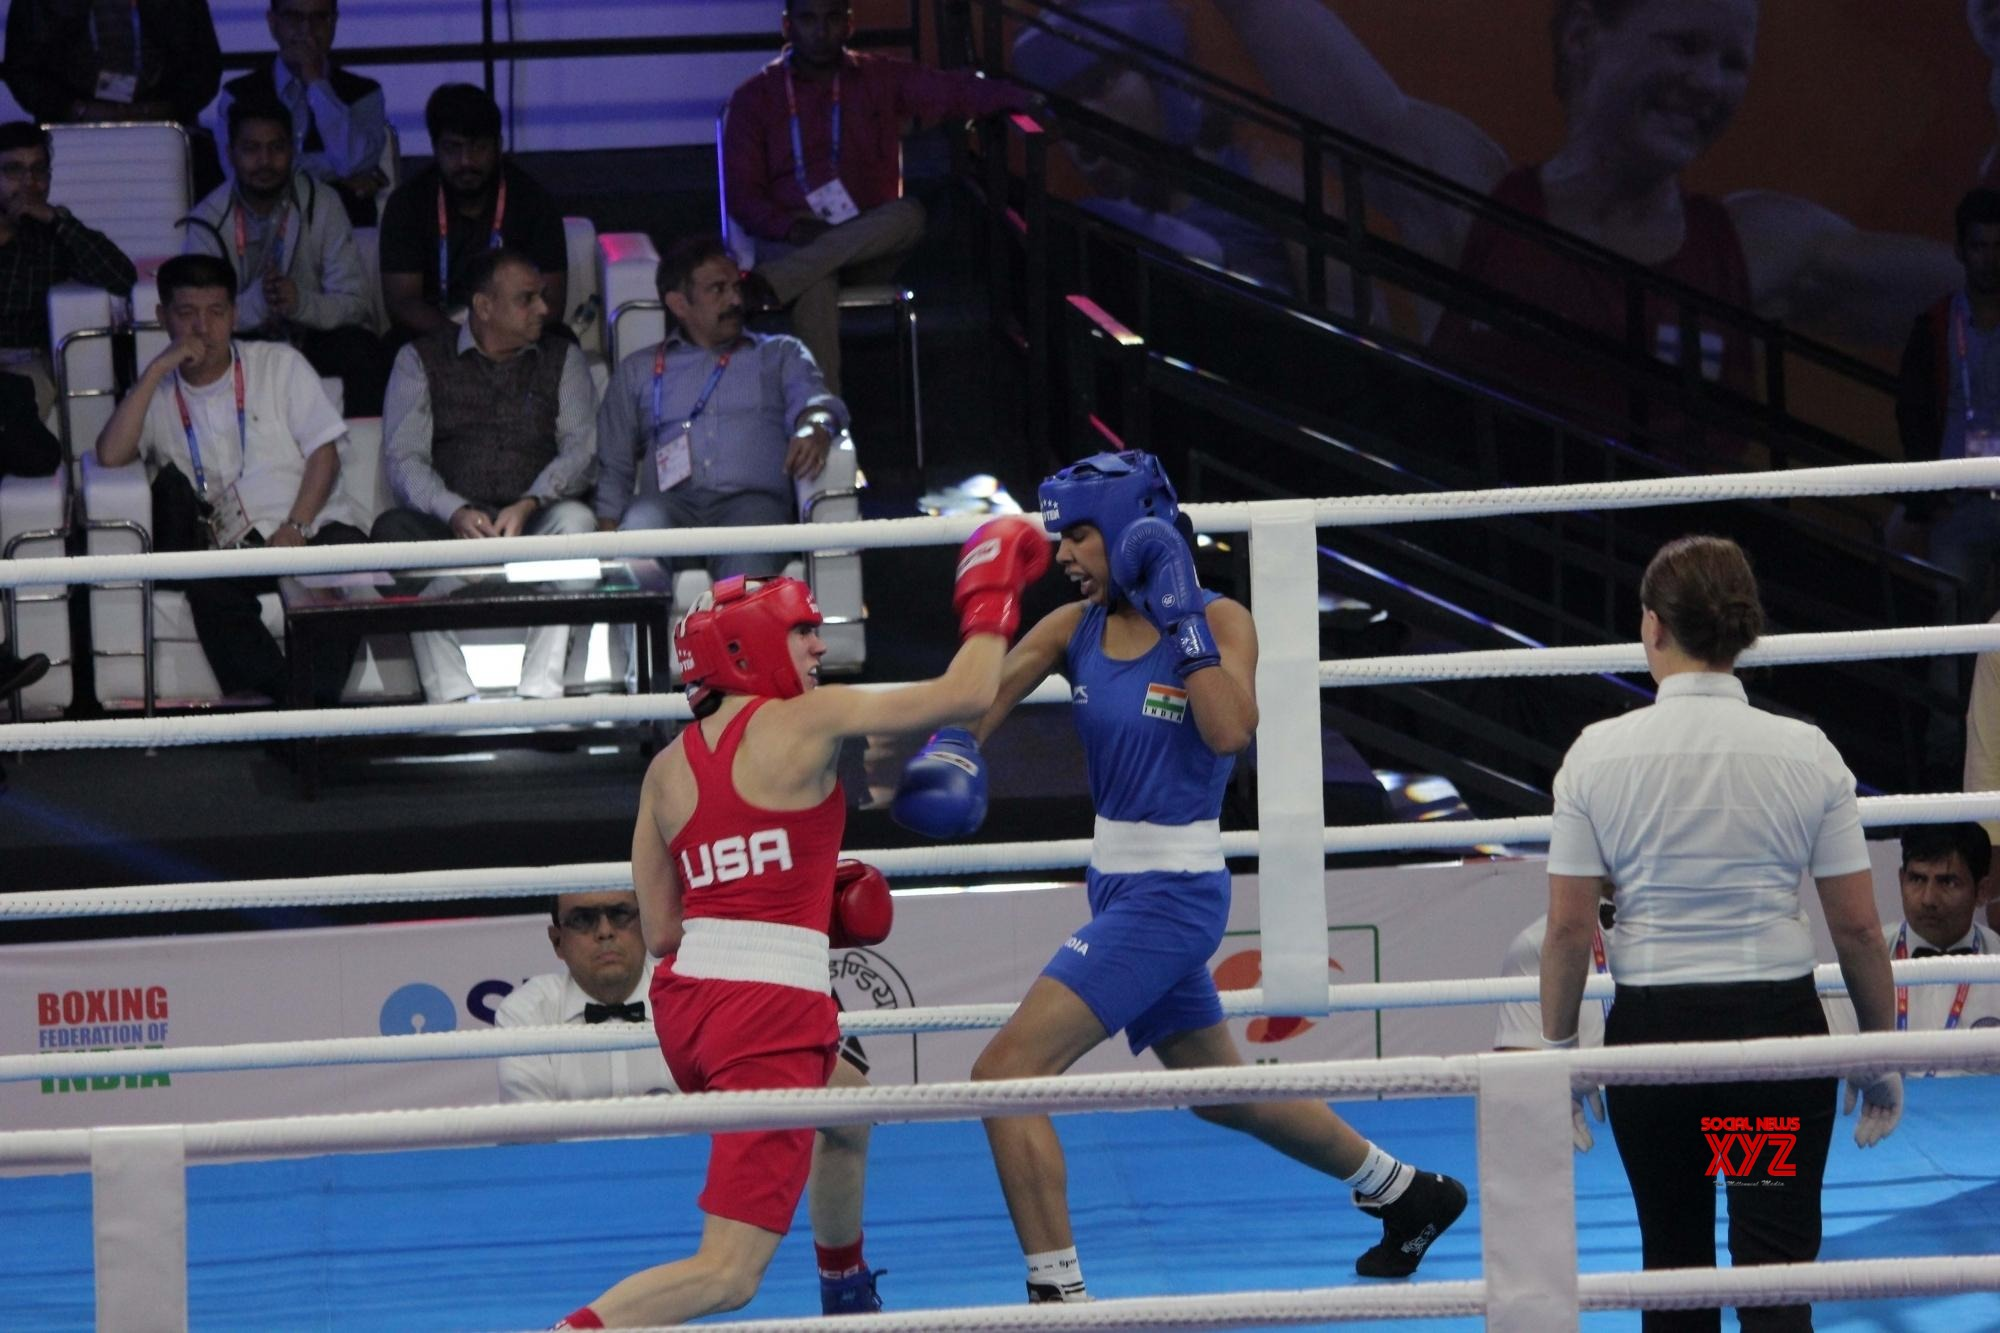 AIBA Boxing C'ship: Sarita Devi dedicates victory to people of Manipur